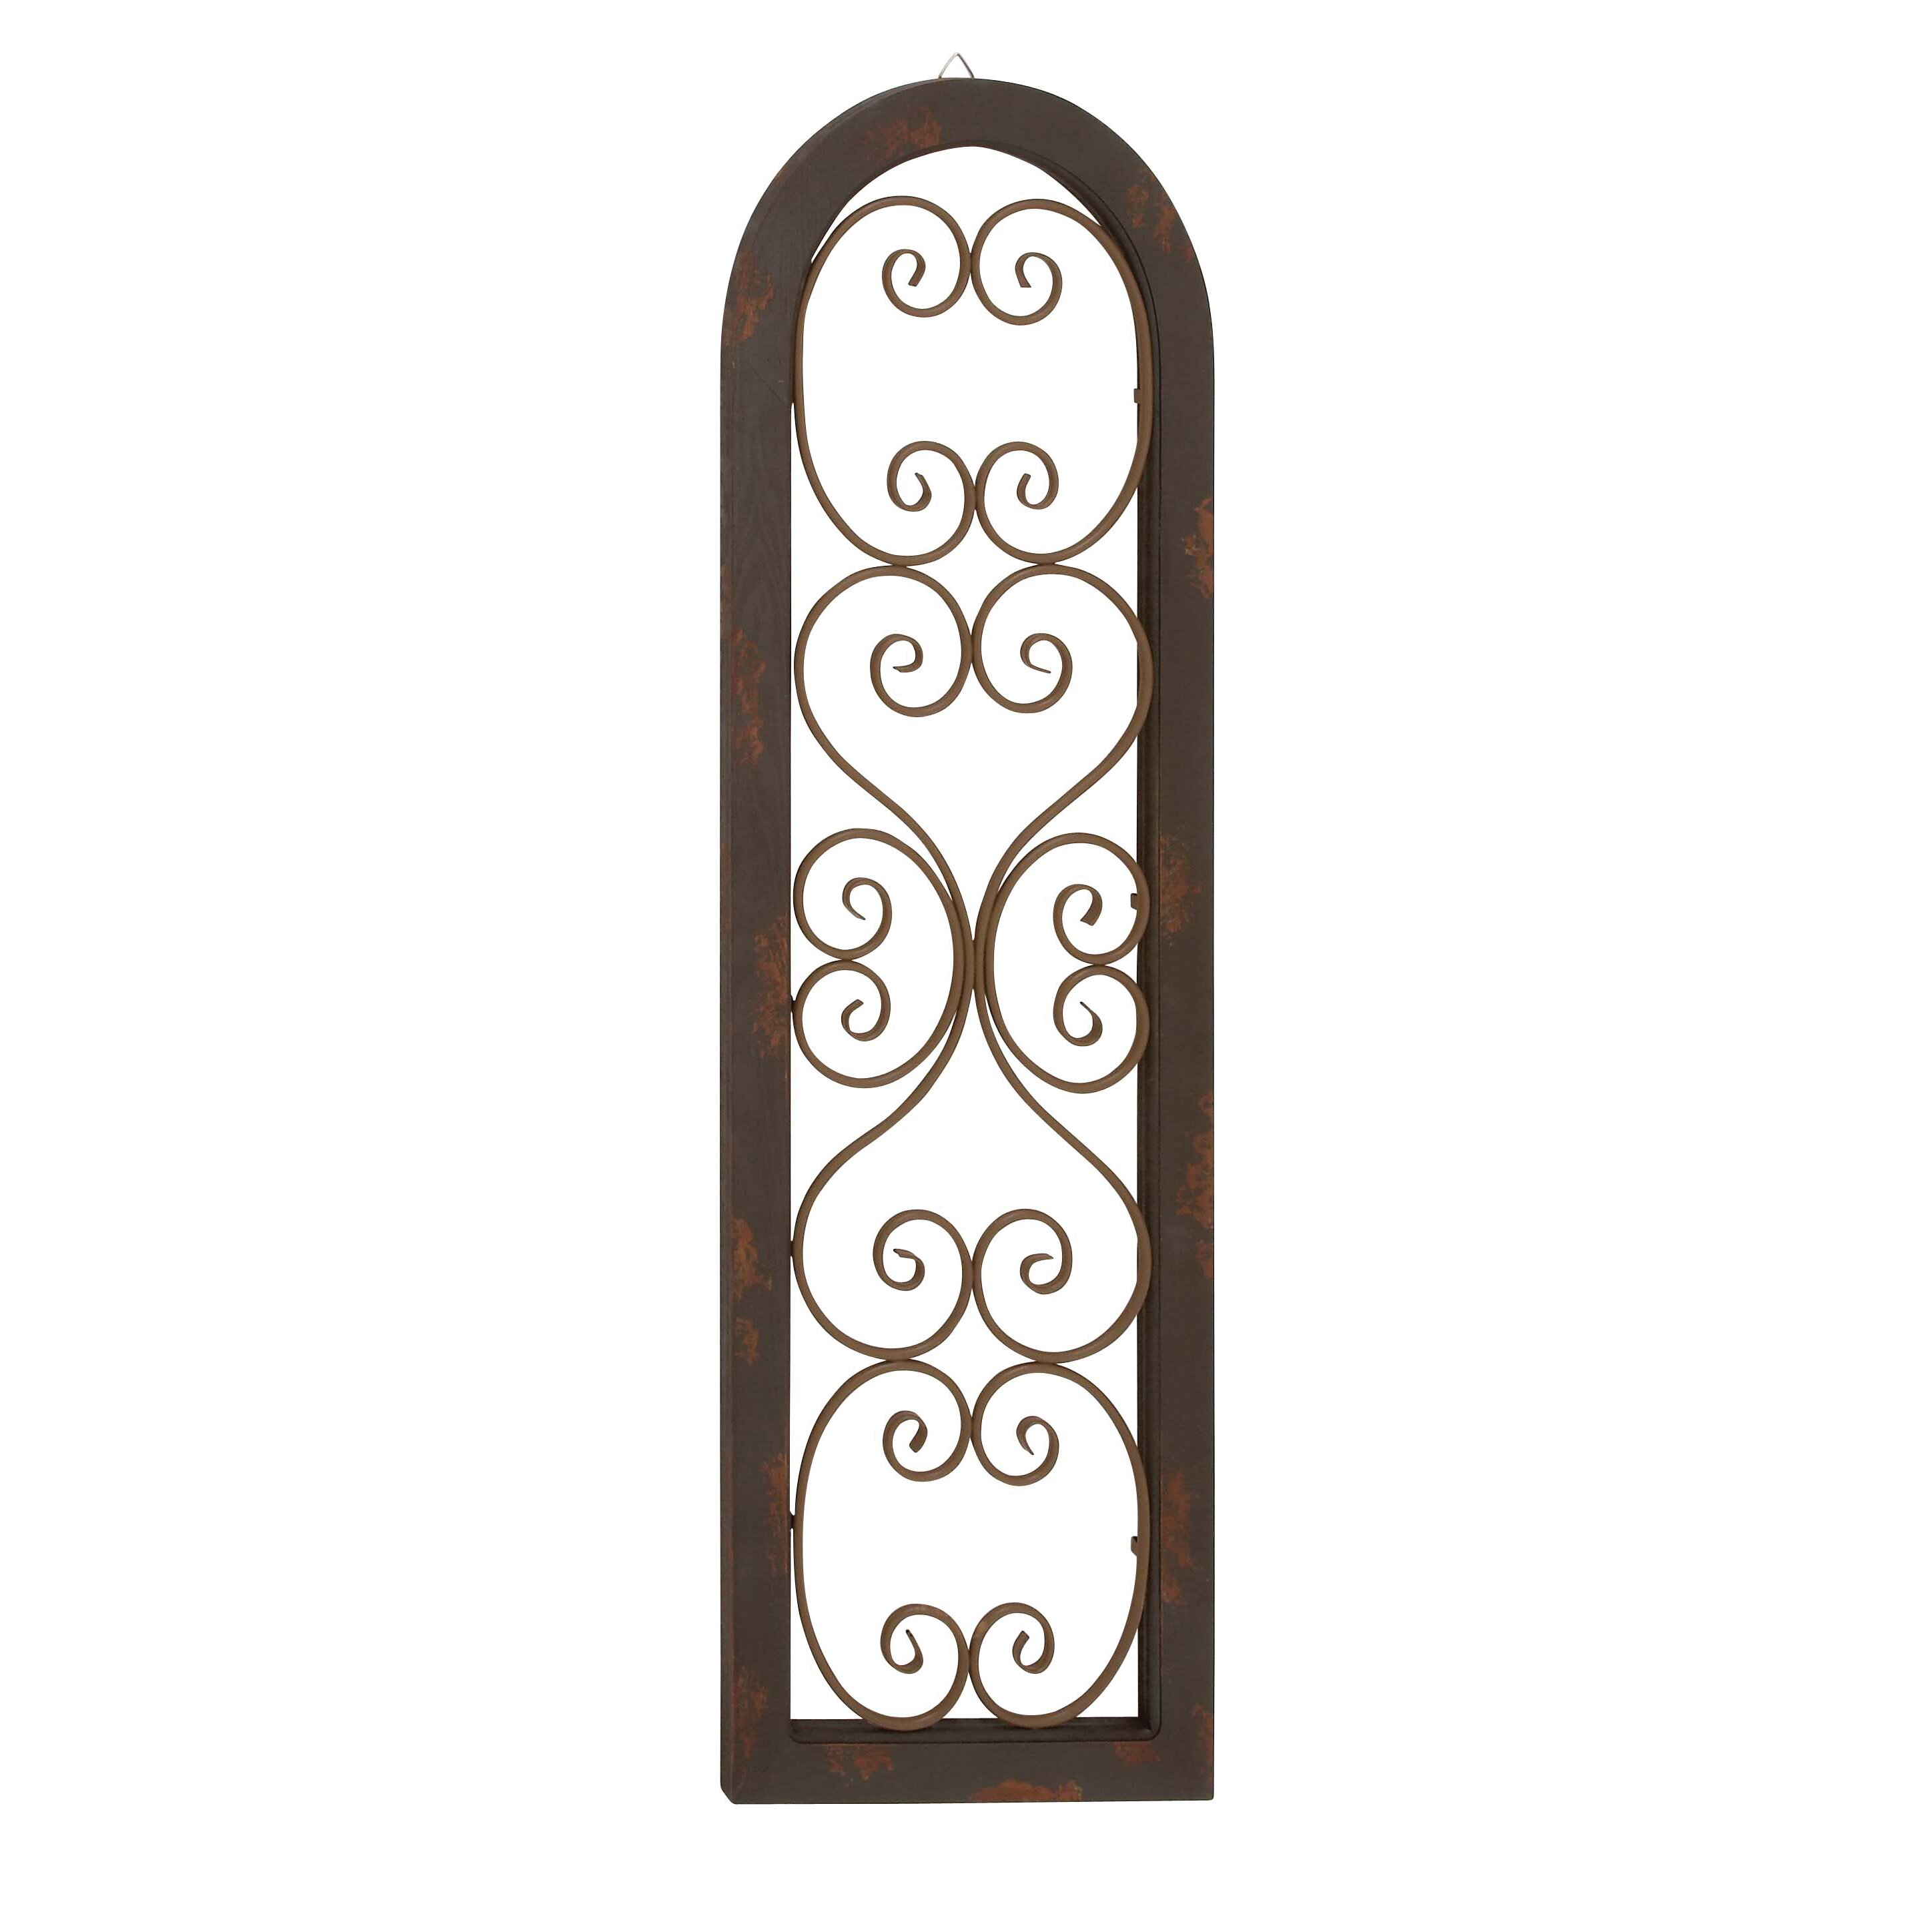 Metal wall décor by woodland imports : Woodland imports elegant and attractive wood metal wall